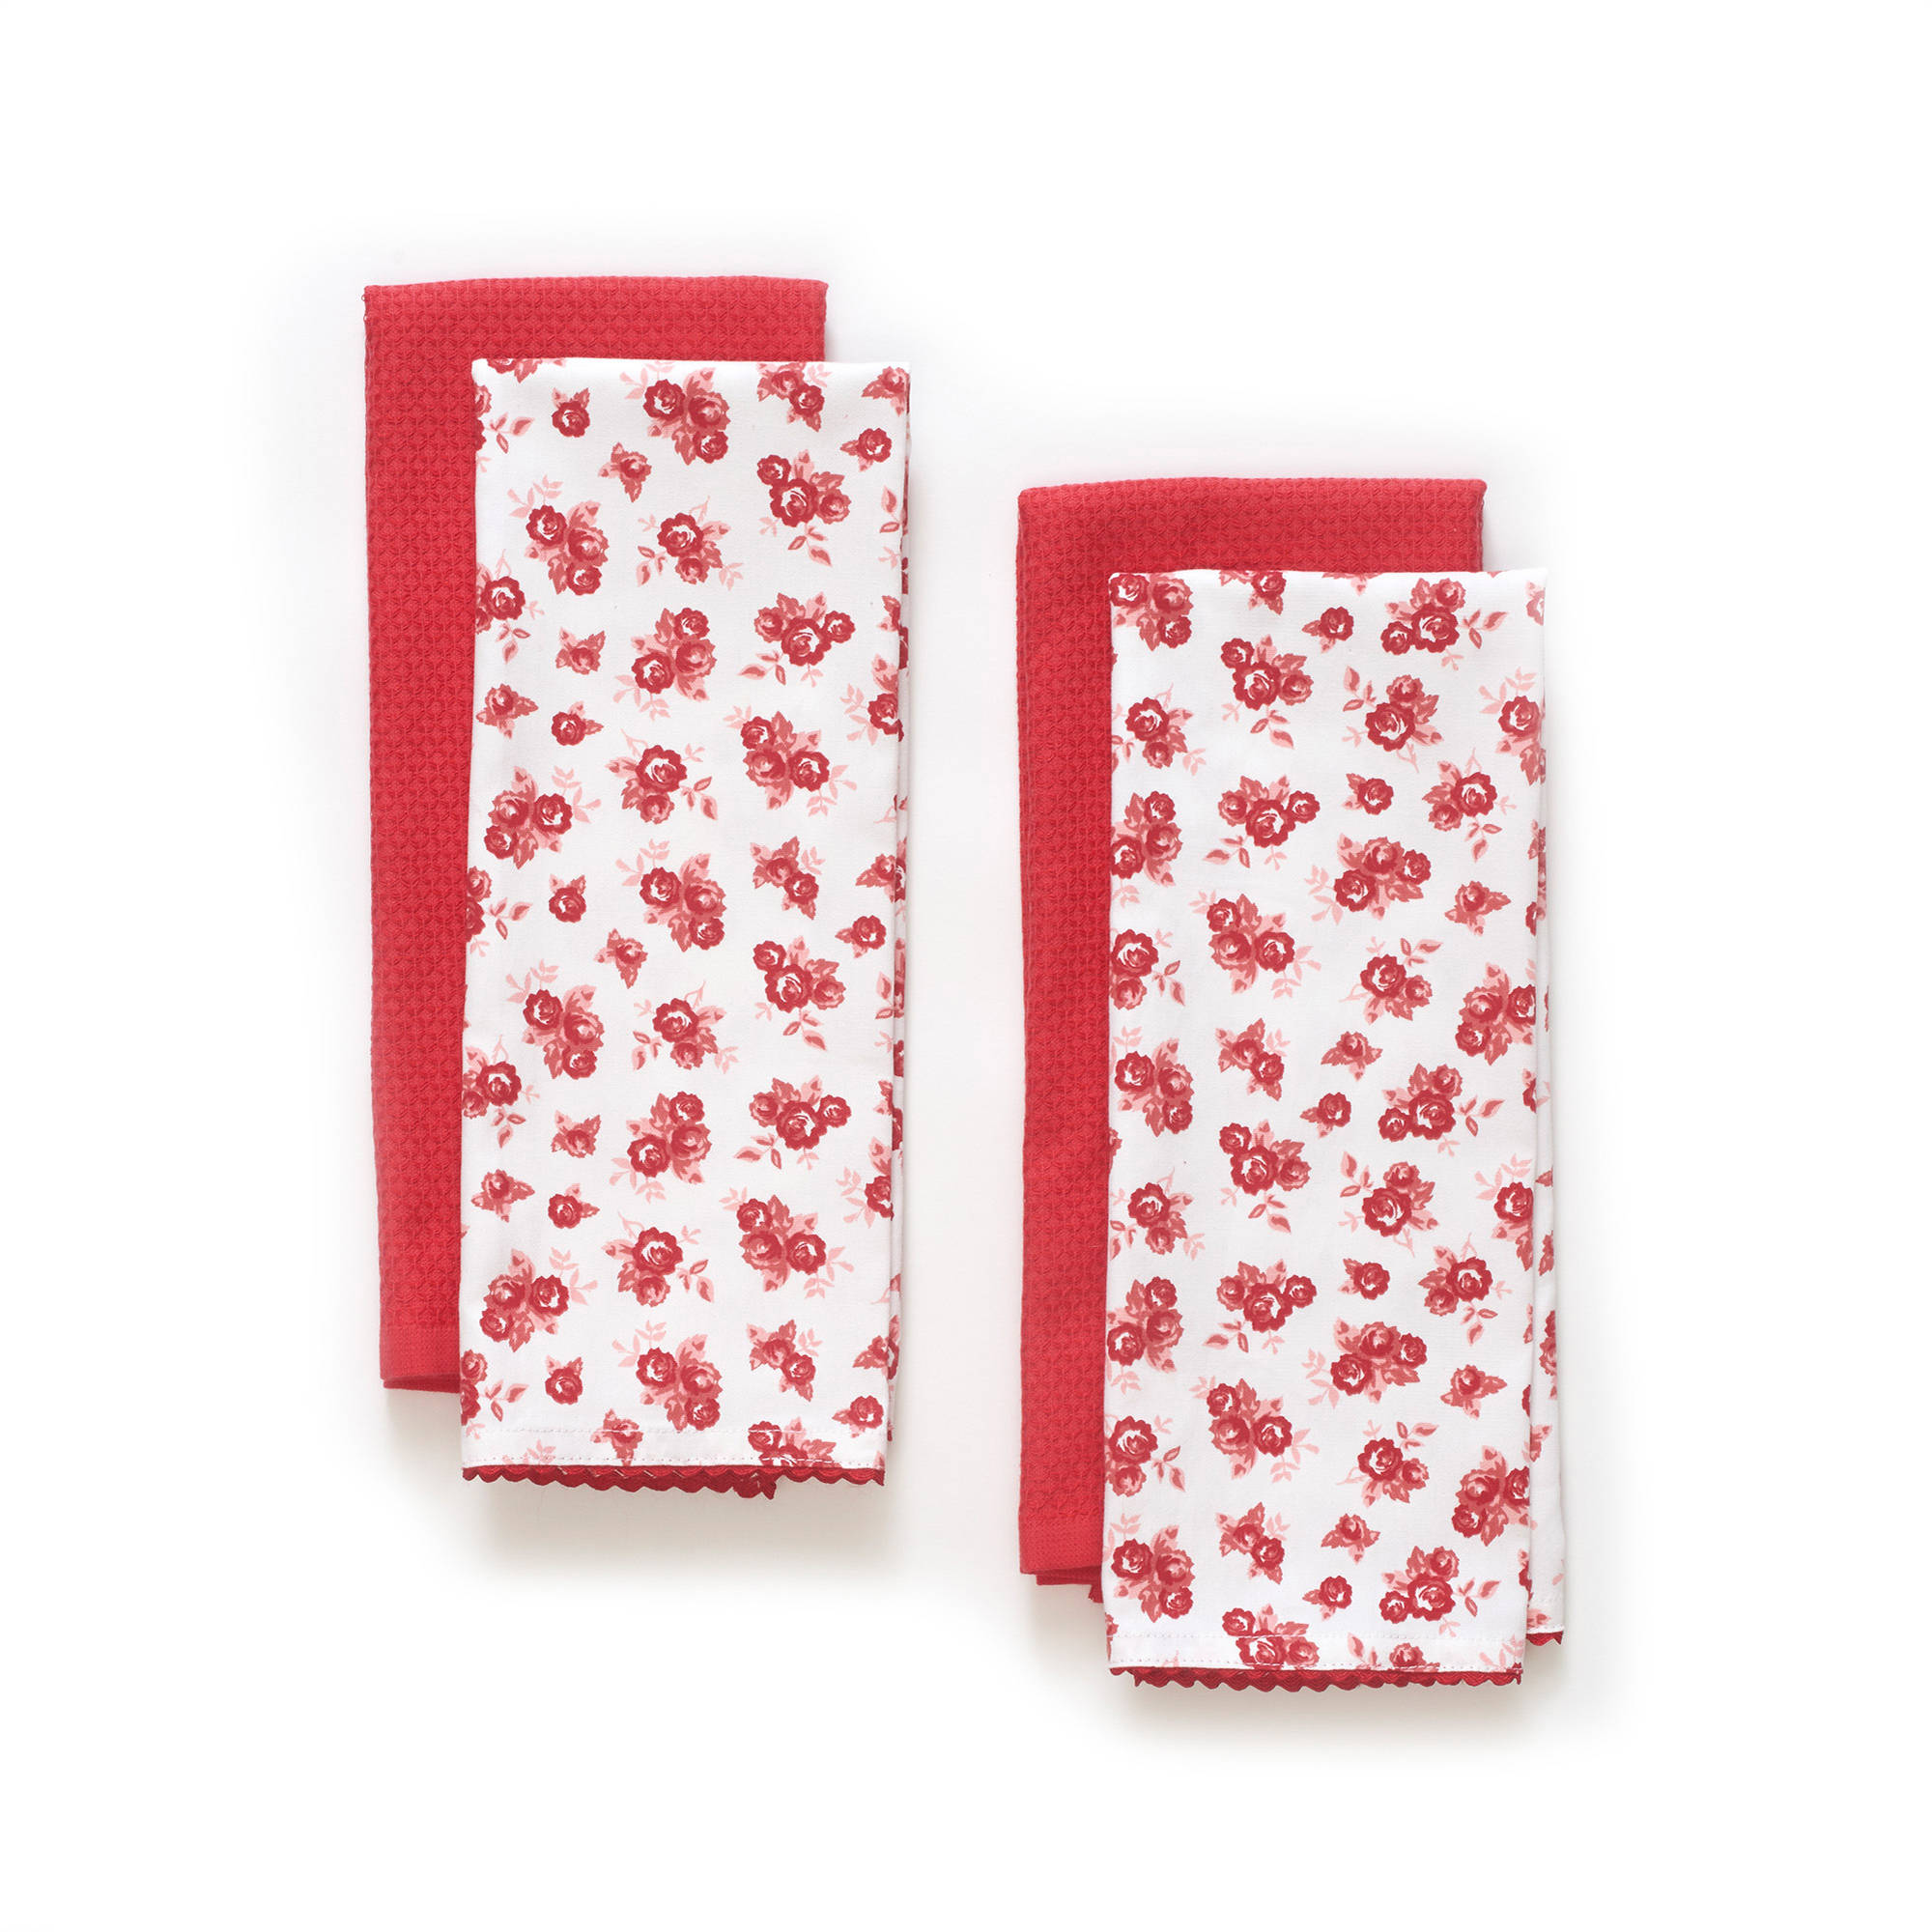 The Pioneer Woman Wild Rose Kitchen Towel Set, 4pk